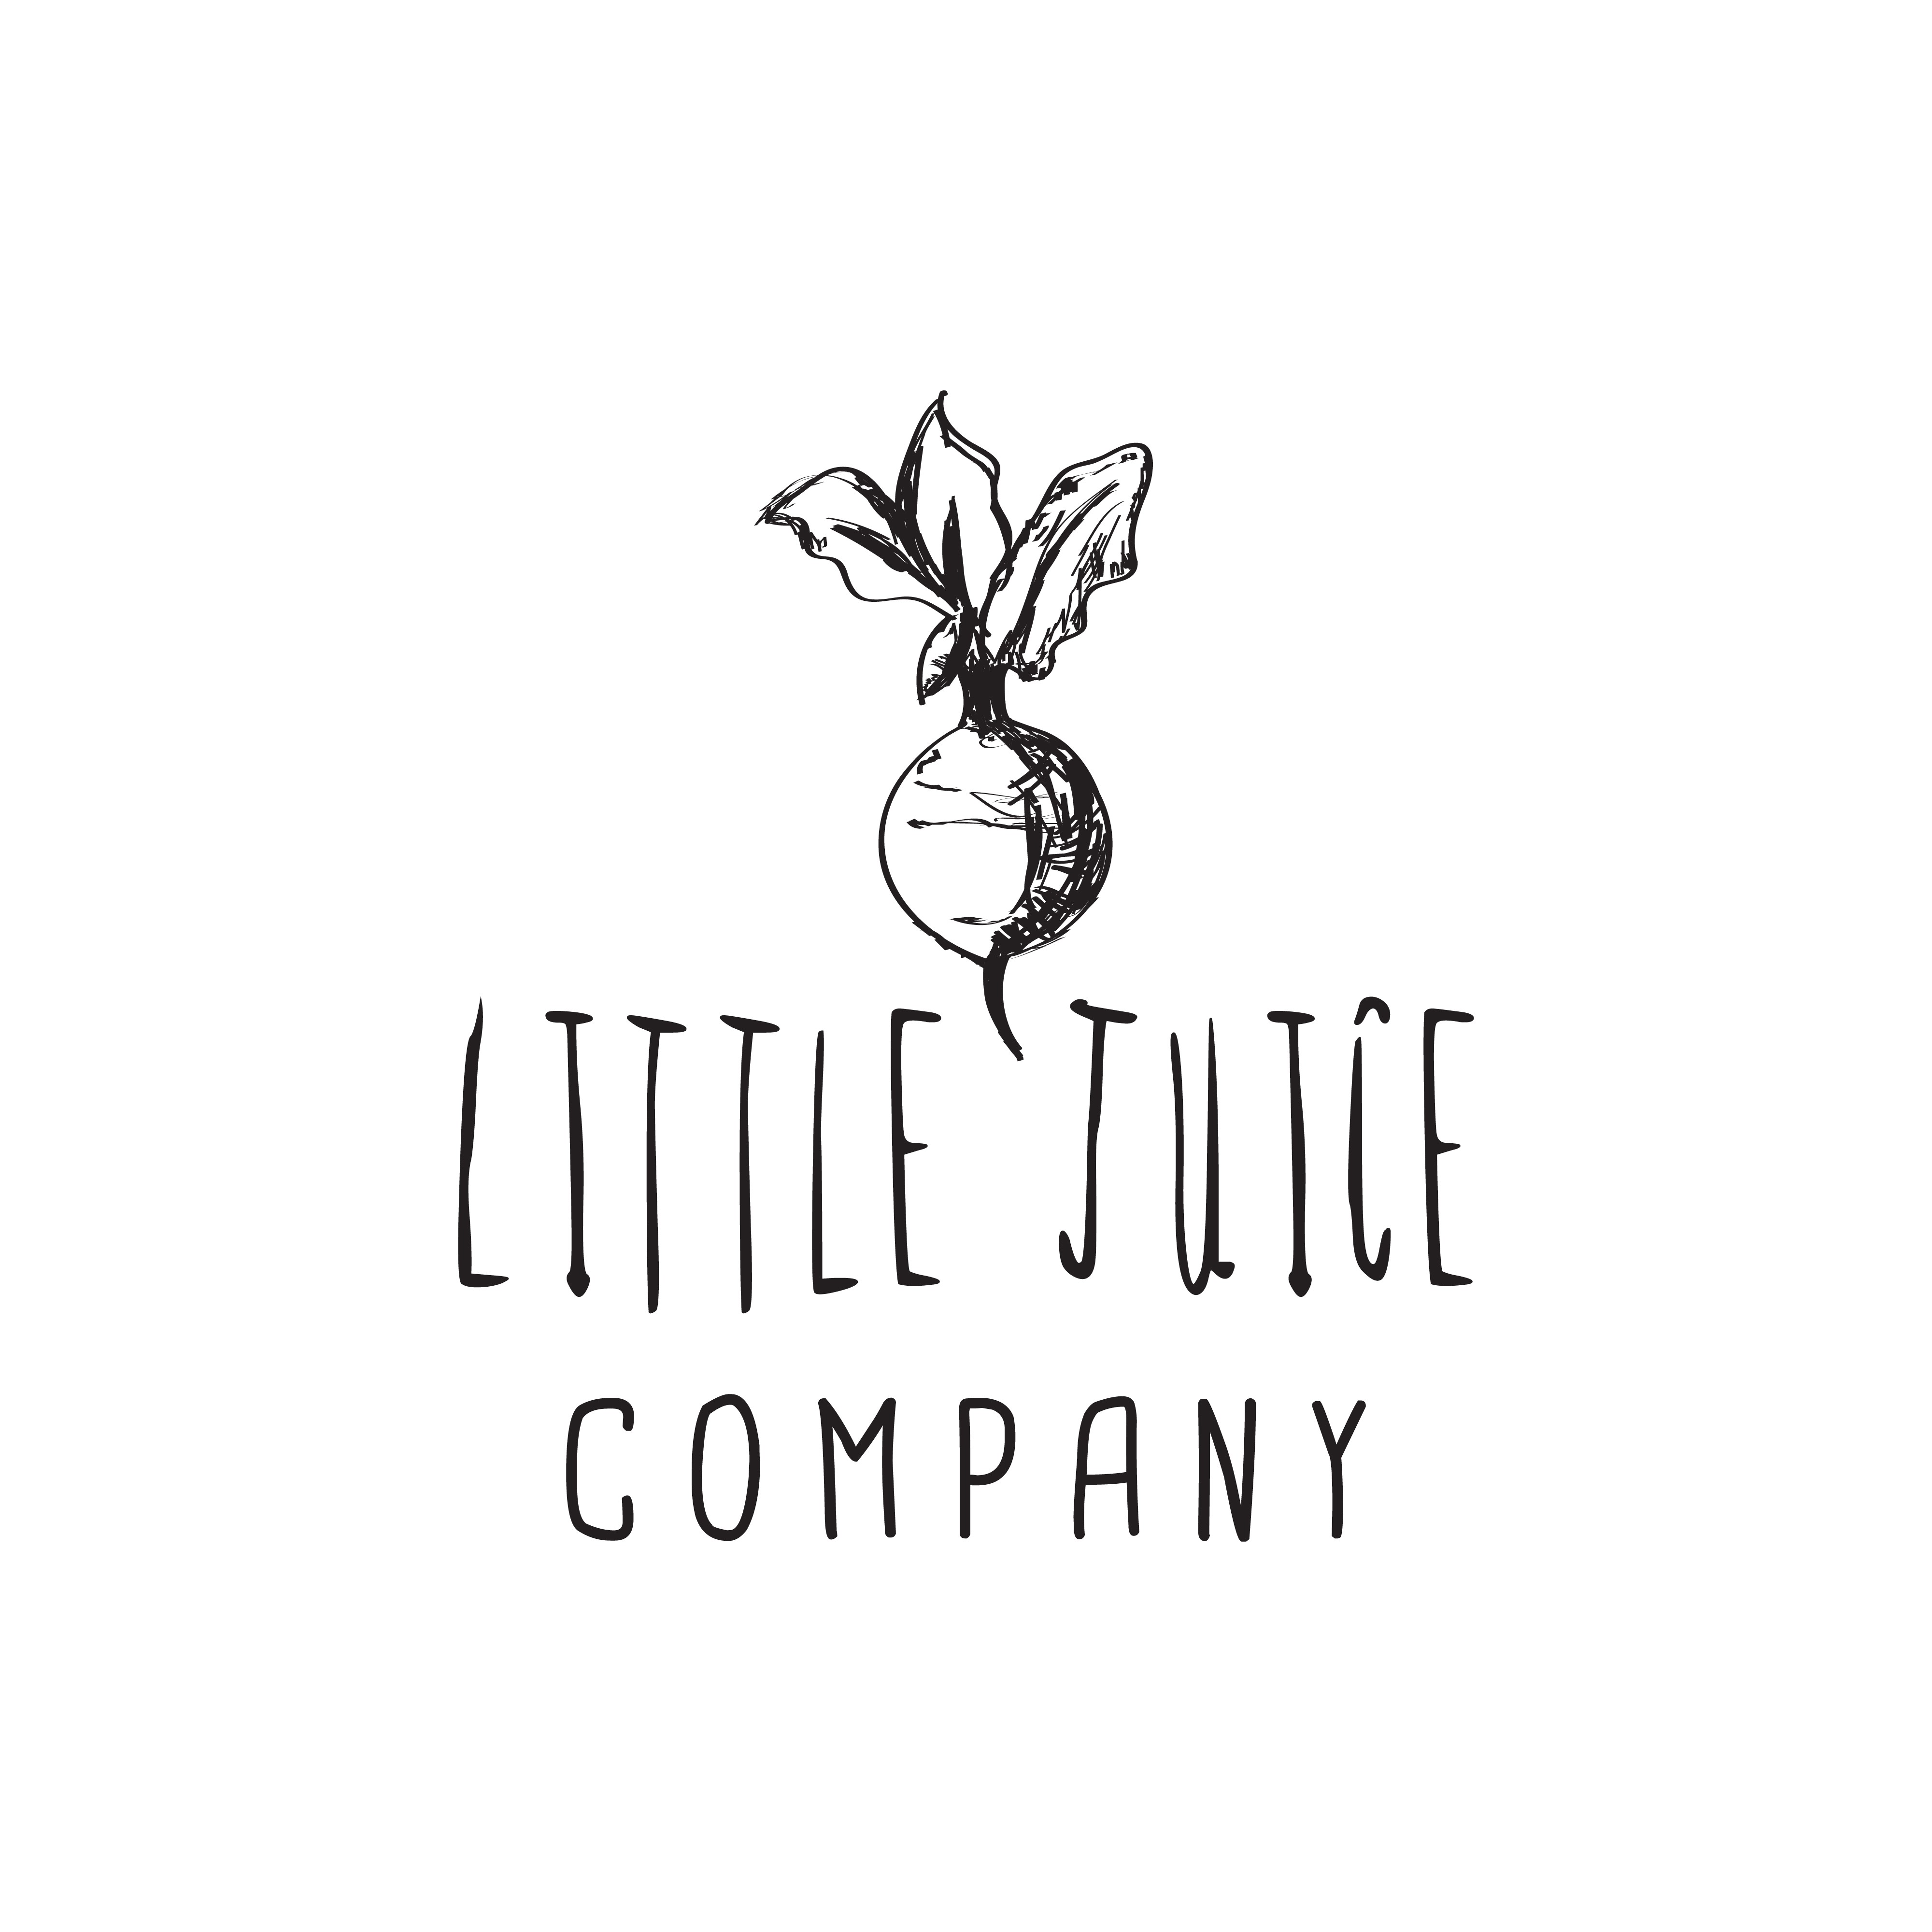 The juice is on the loose... for a fresh new company logo!